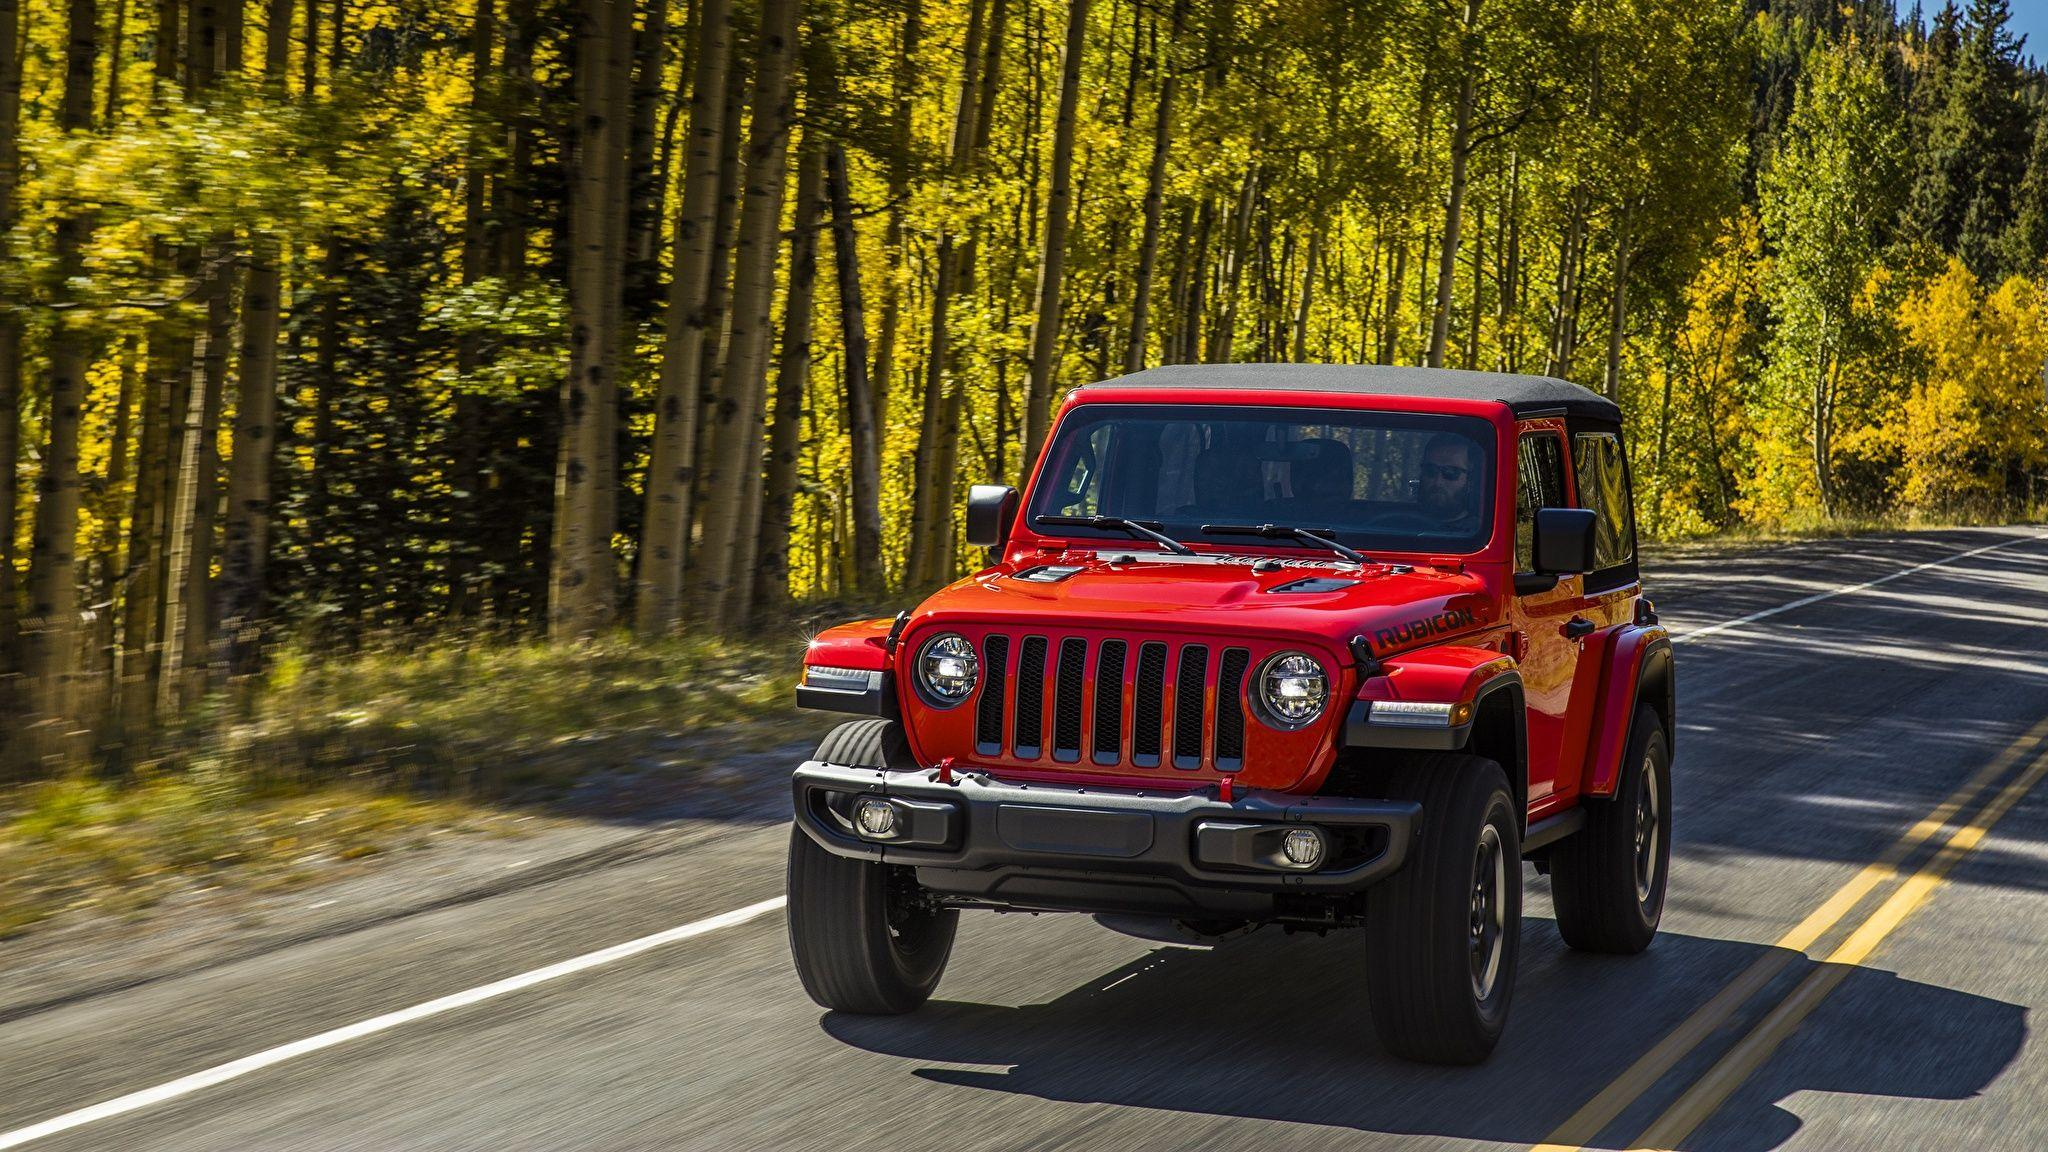 Photos Jeep Wrangler Rubicon 2018 Red Cars 2048x1152